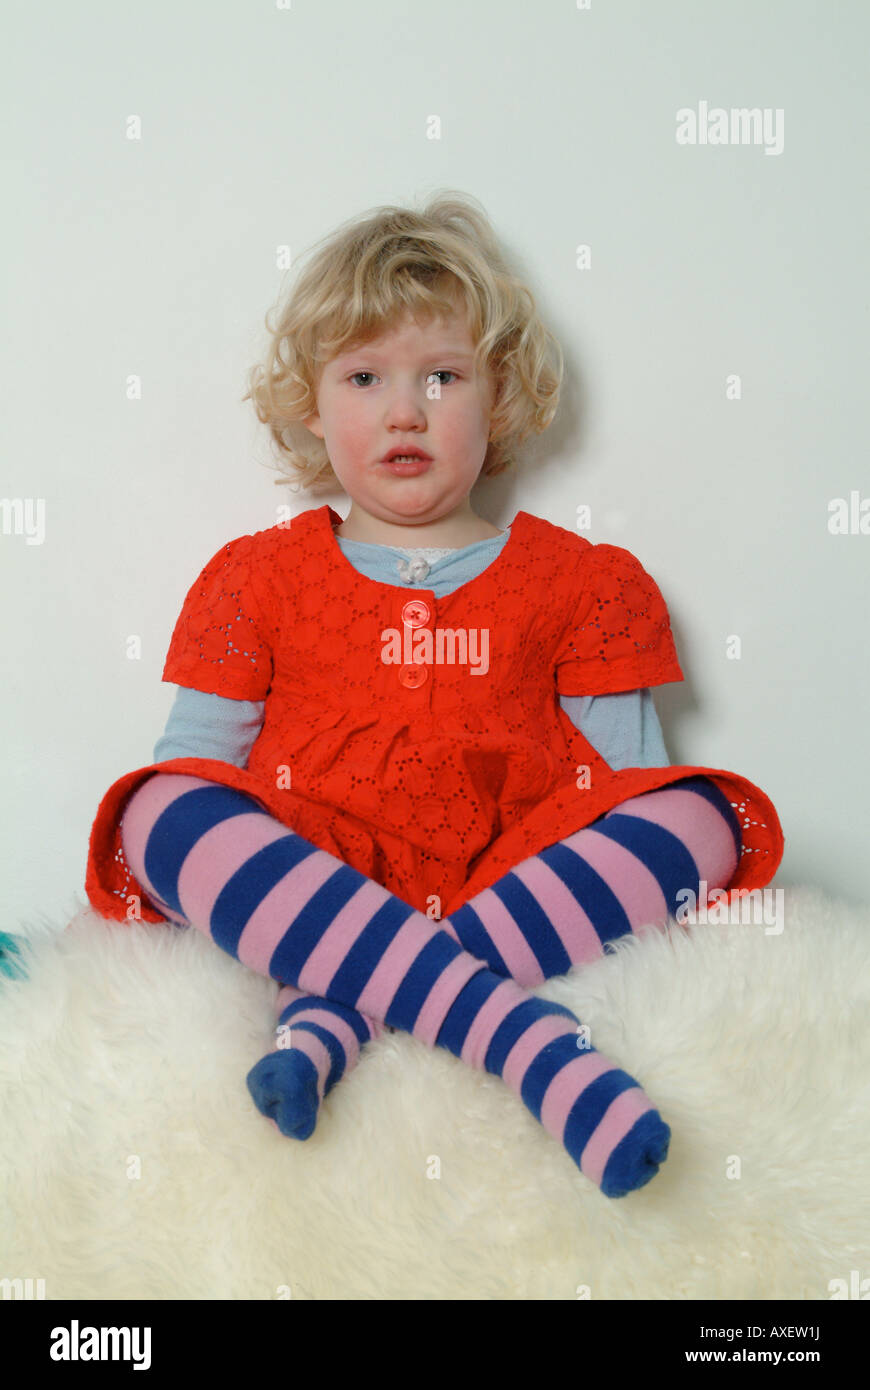 Little blond girl sitting crossed legged on fur rug, in red dress and stripy tights. - Stock Image